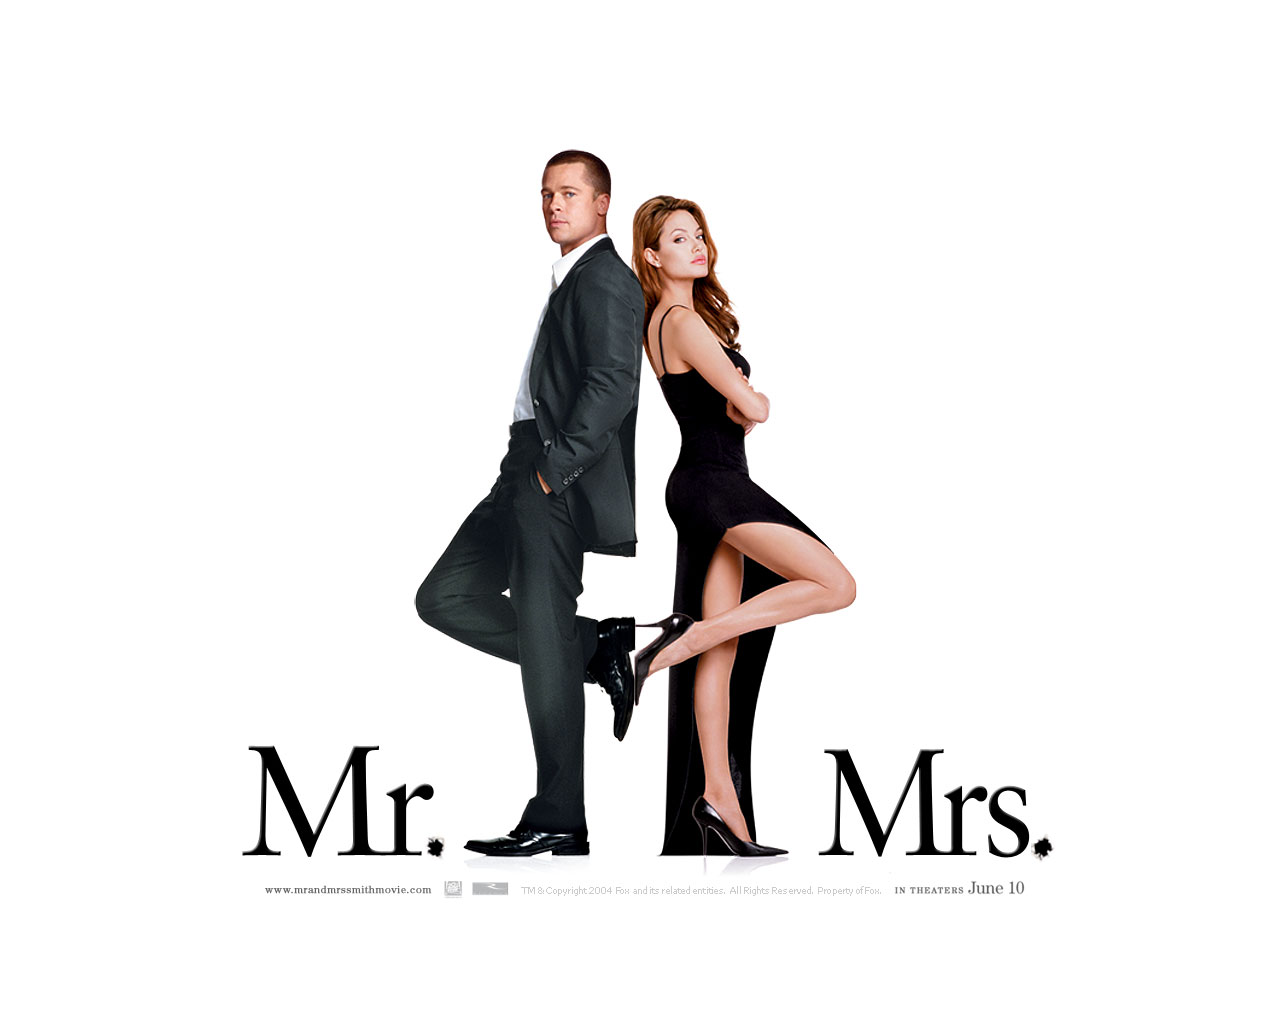 Mr And Mrs Smith free image